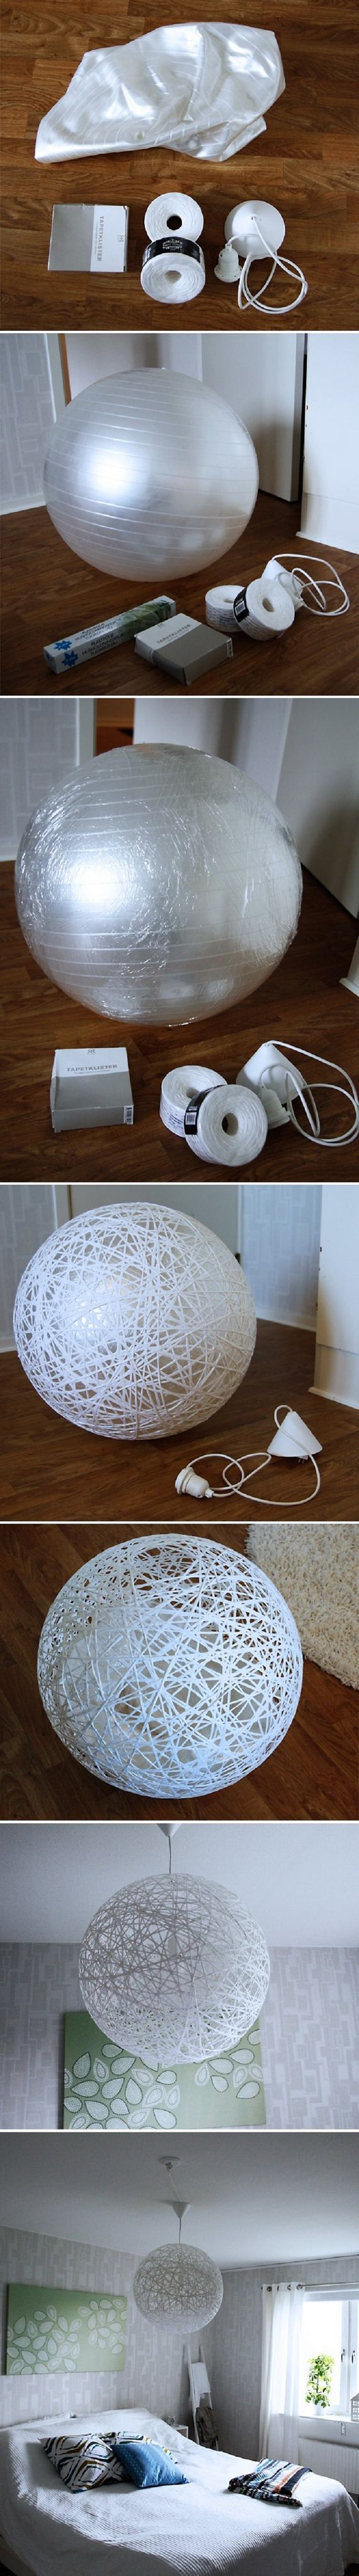 04-Instant-and-Fun-Easy-DIY-Craft-Projects